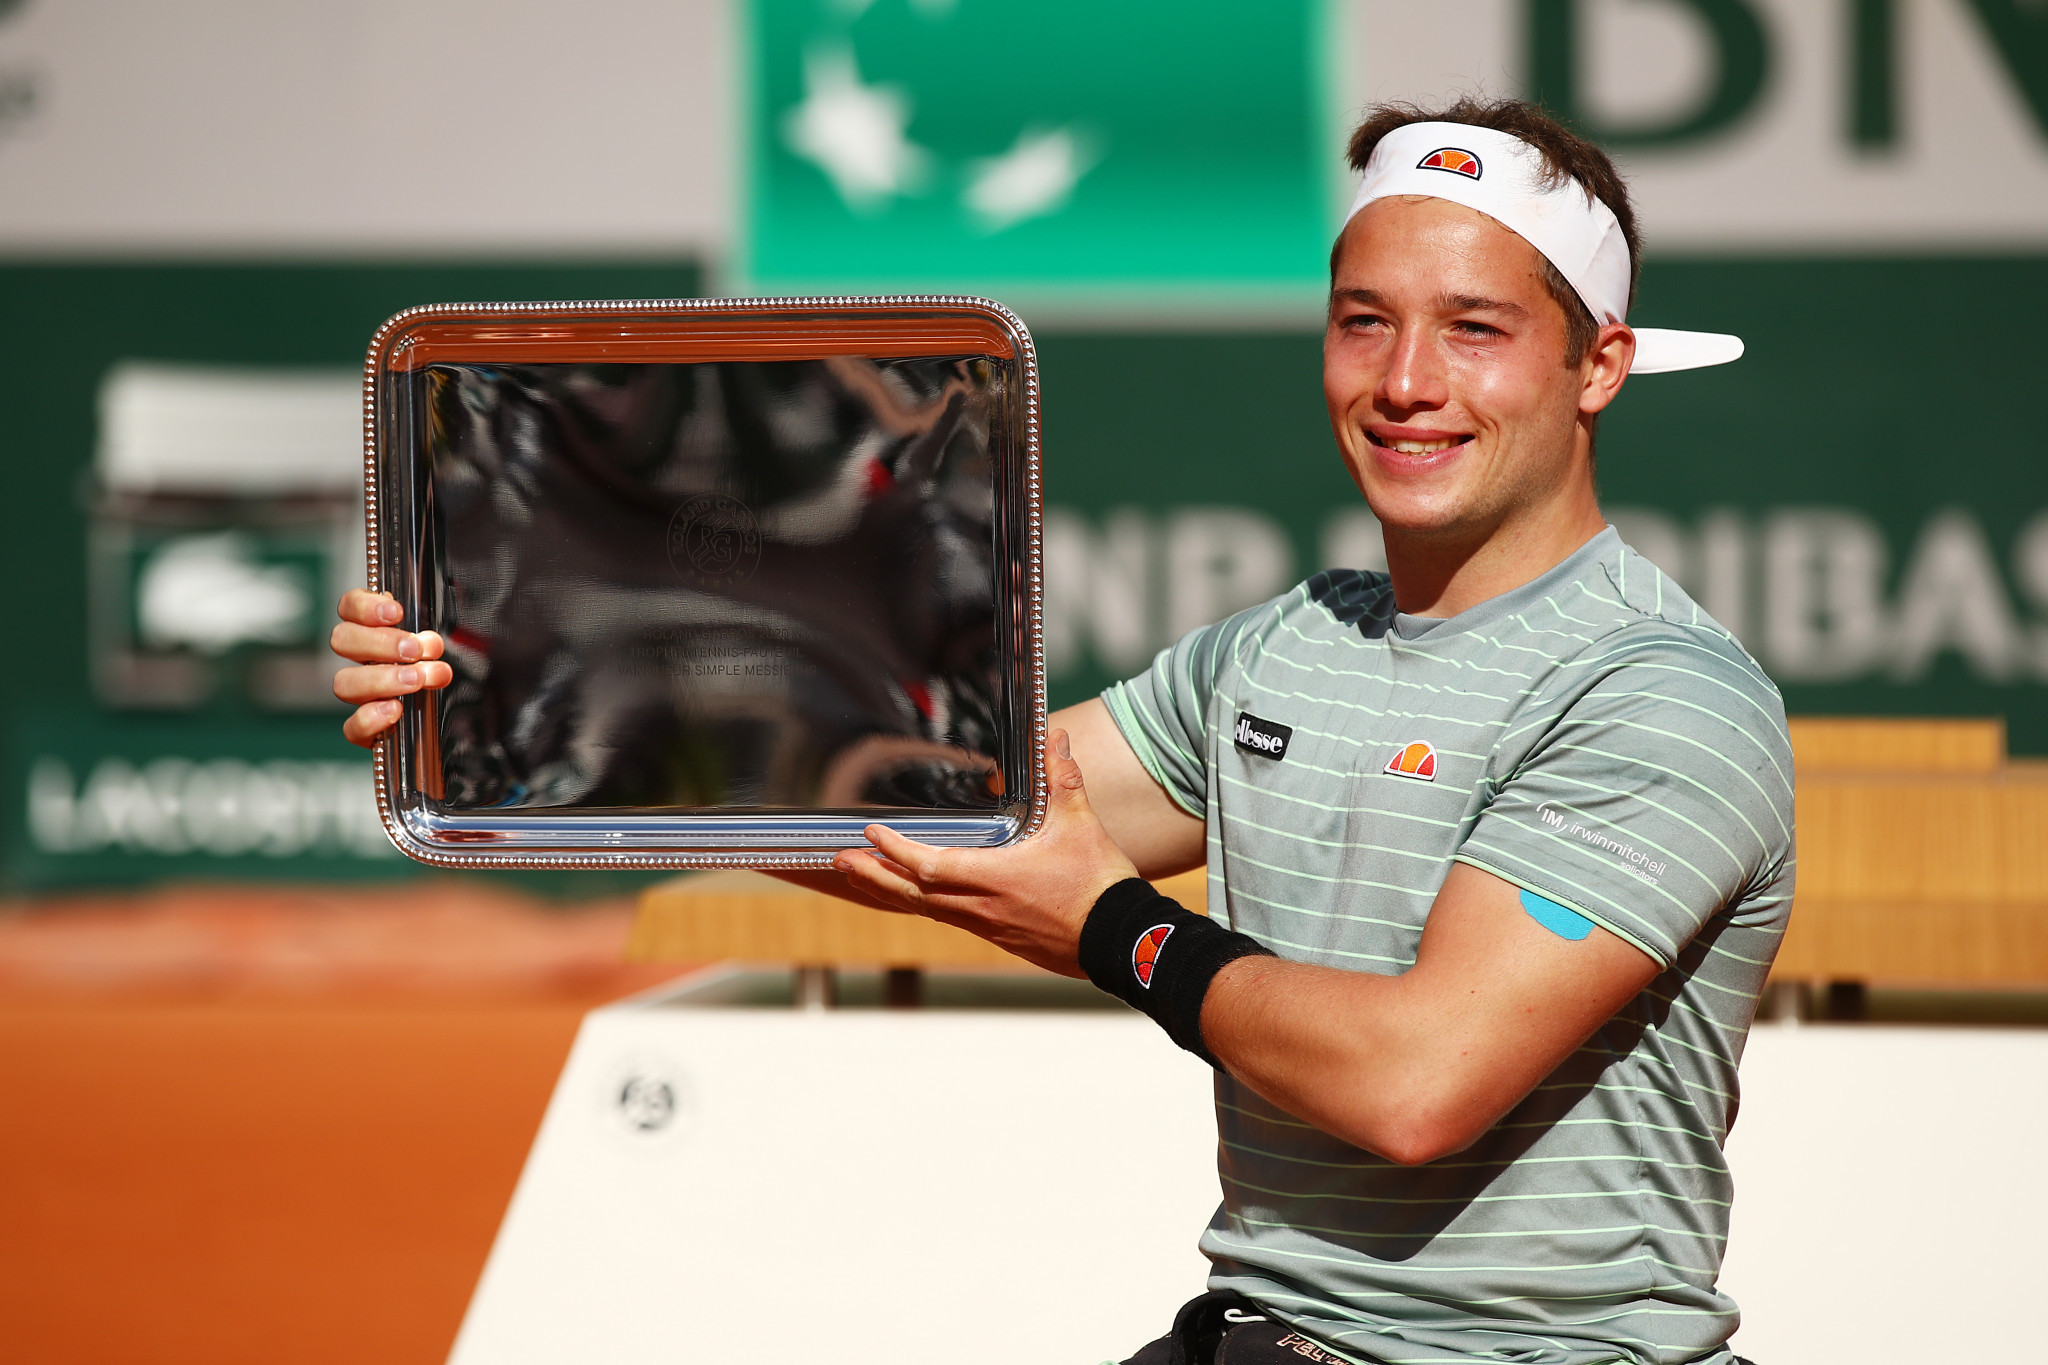 Hewett wins second French Open title in two days